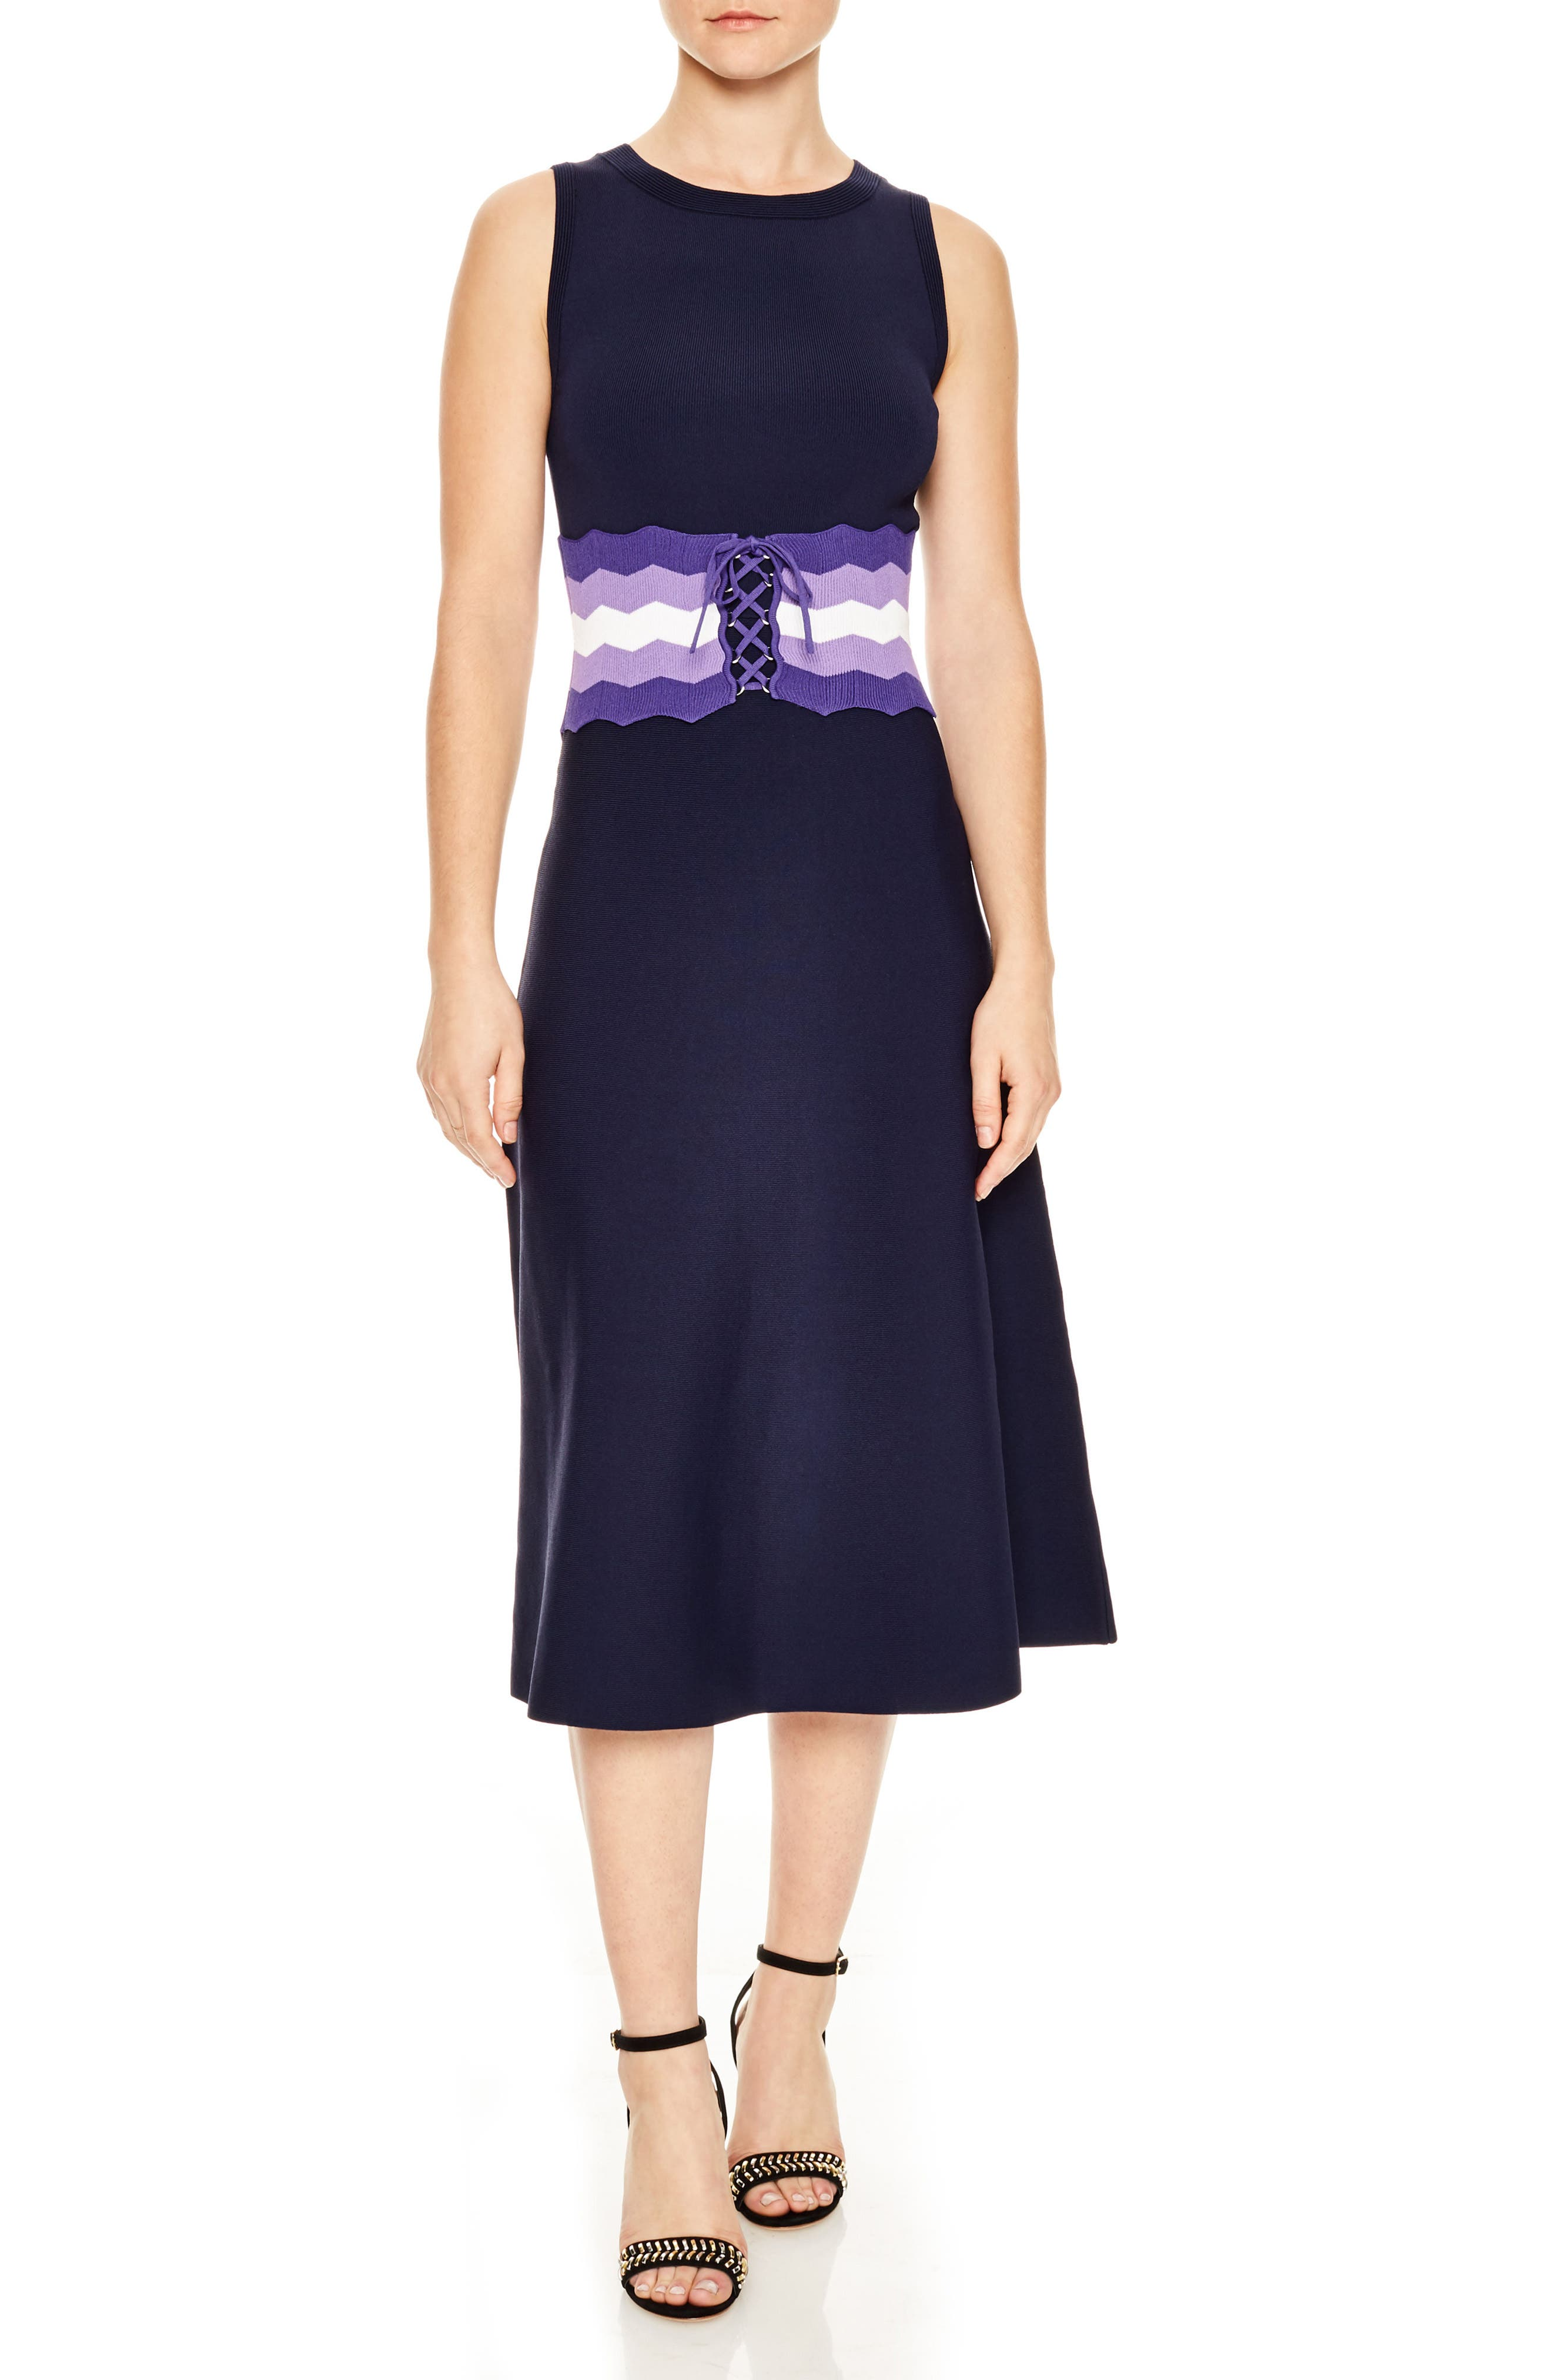 Belted Knit Midi Dress,                         Main,                         color, Navy Blue